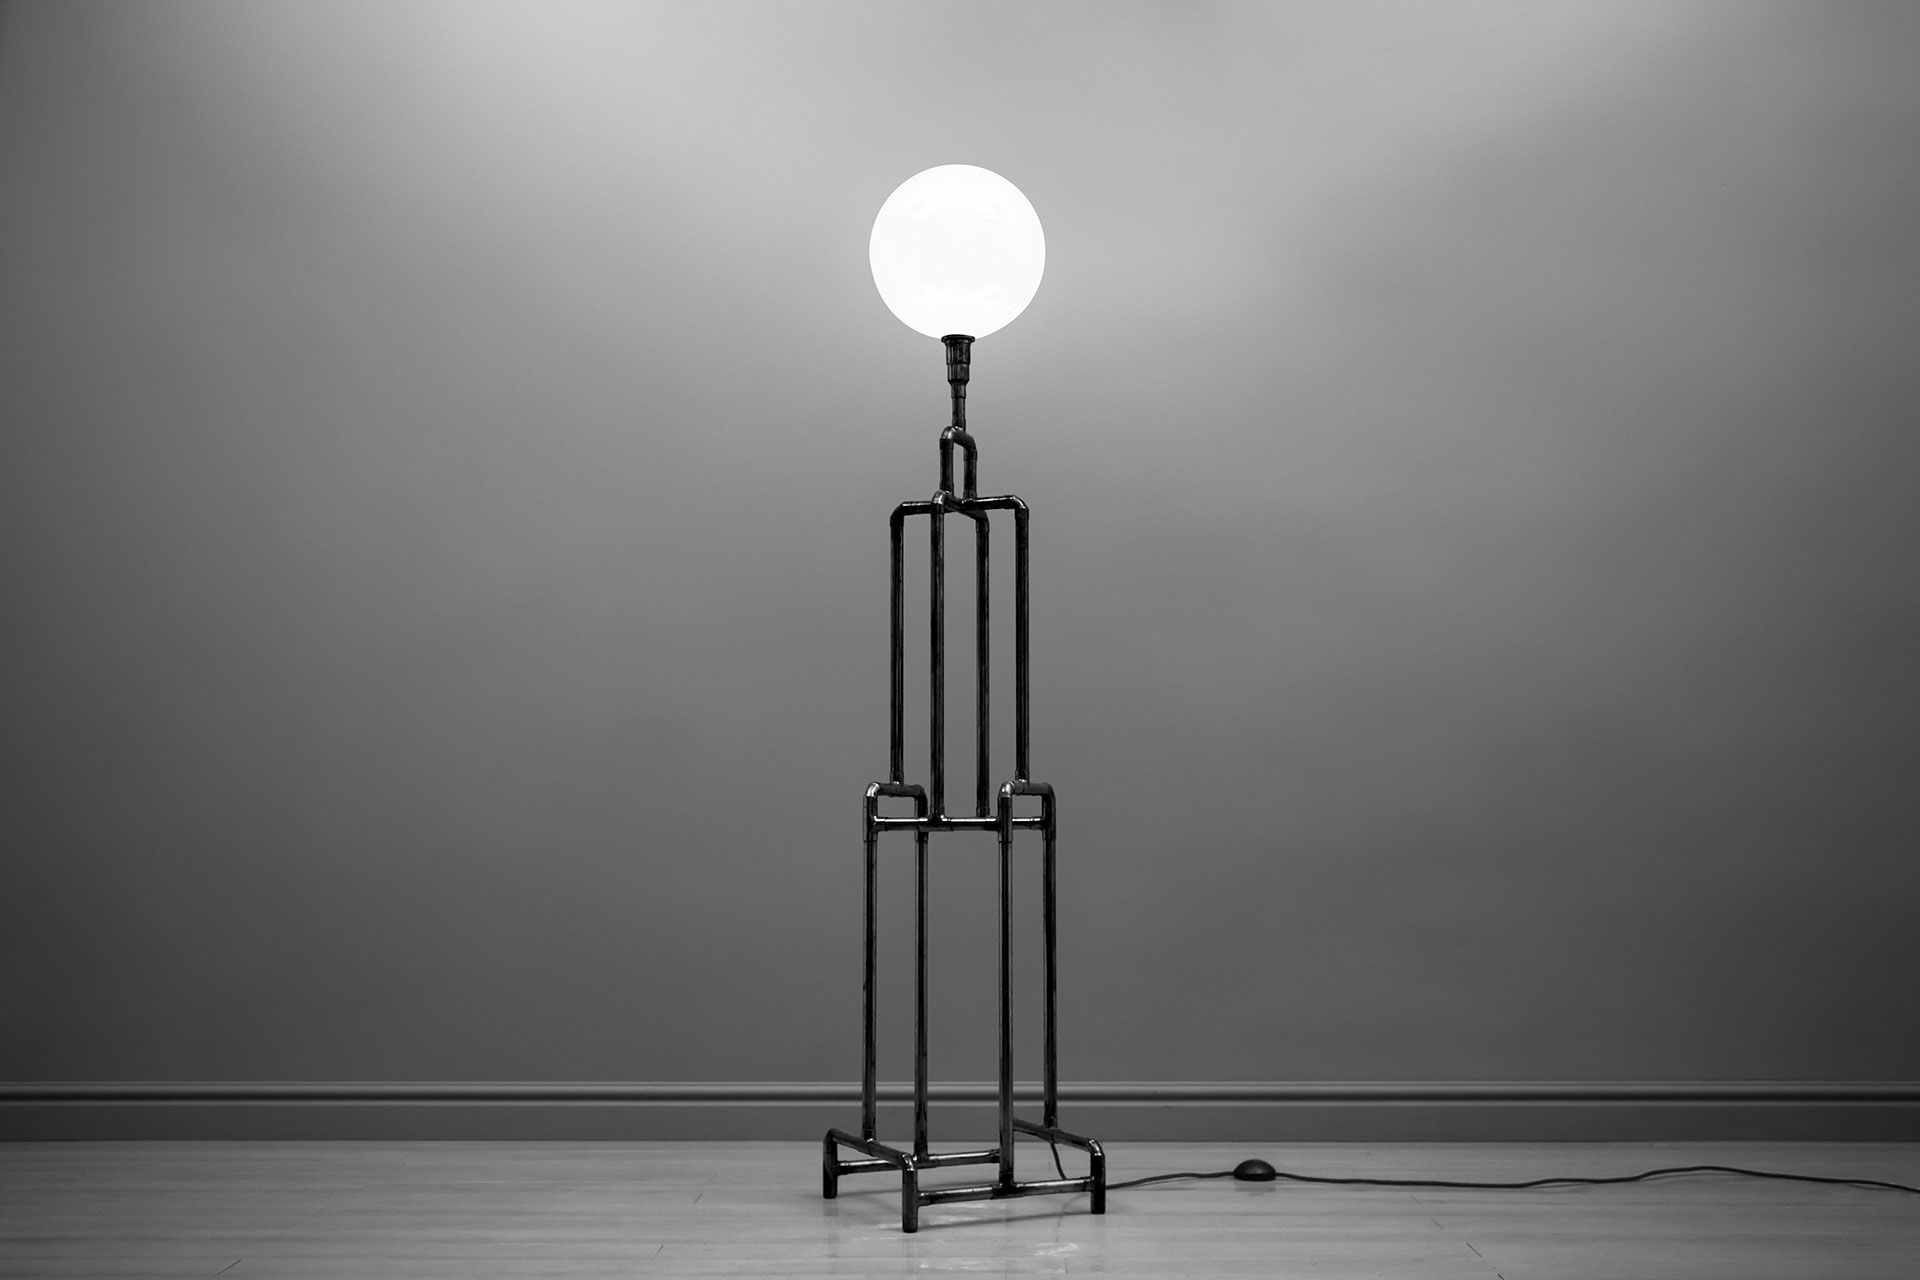 Industrial design floor lamp in black metal with milk globe inspired by Art Deco architecture